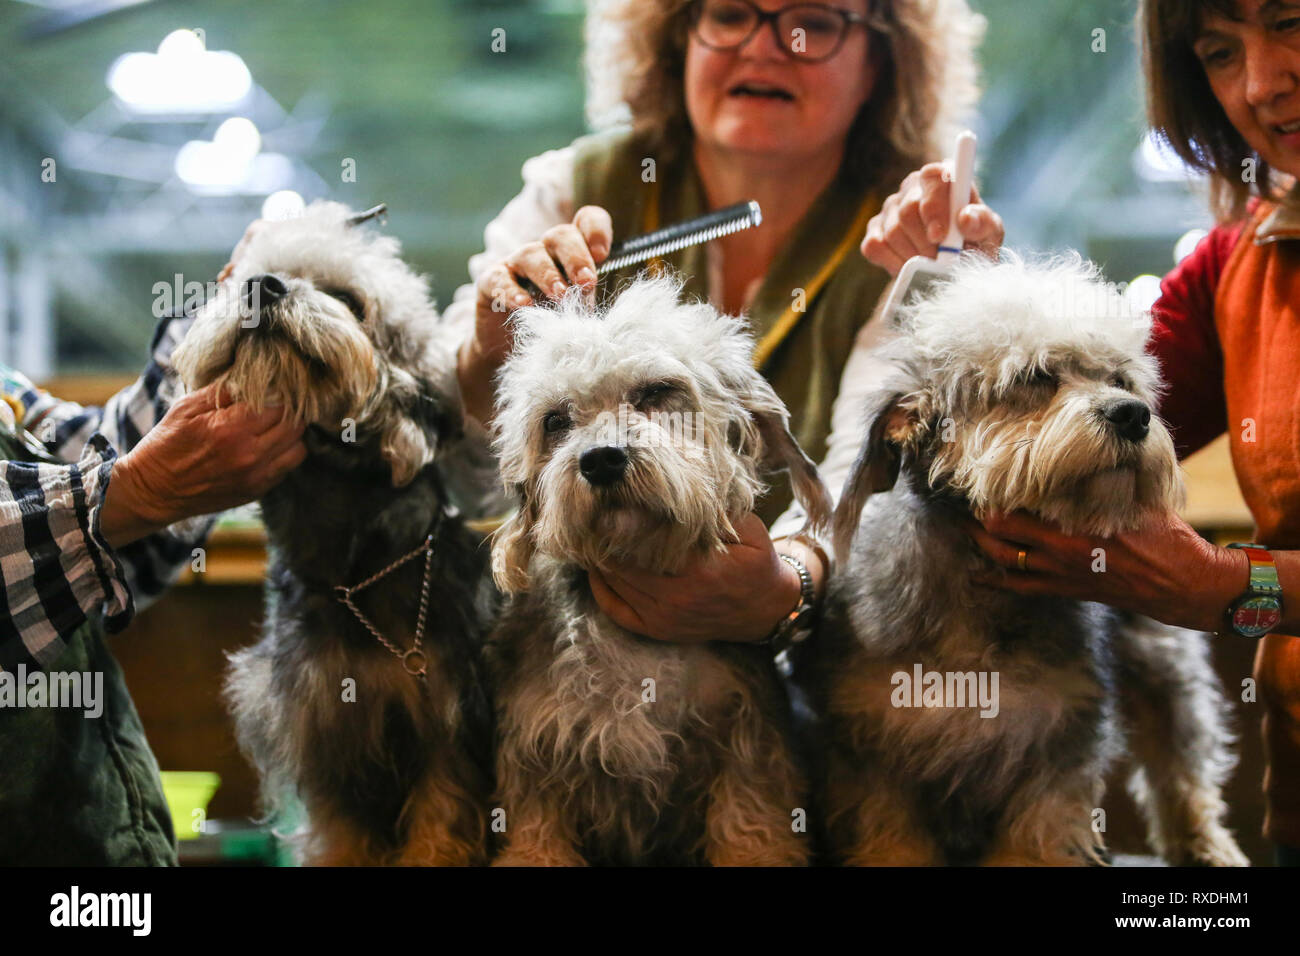 Birmingham, UK. 9th March, 2019. Three terriers receives a last minute spruce before the show. Credit: Peter Lopeman/Alamy Live News - Stock Image